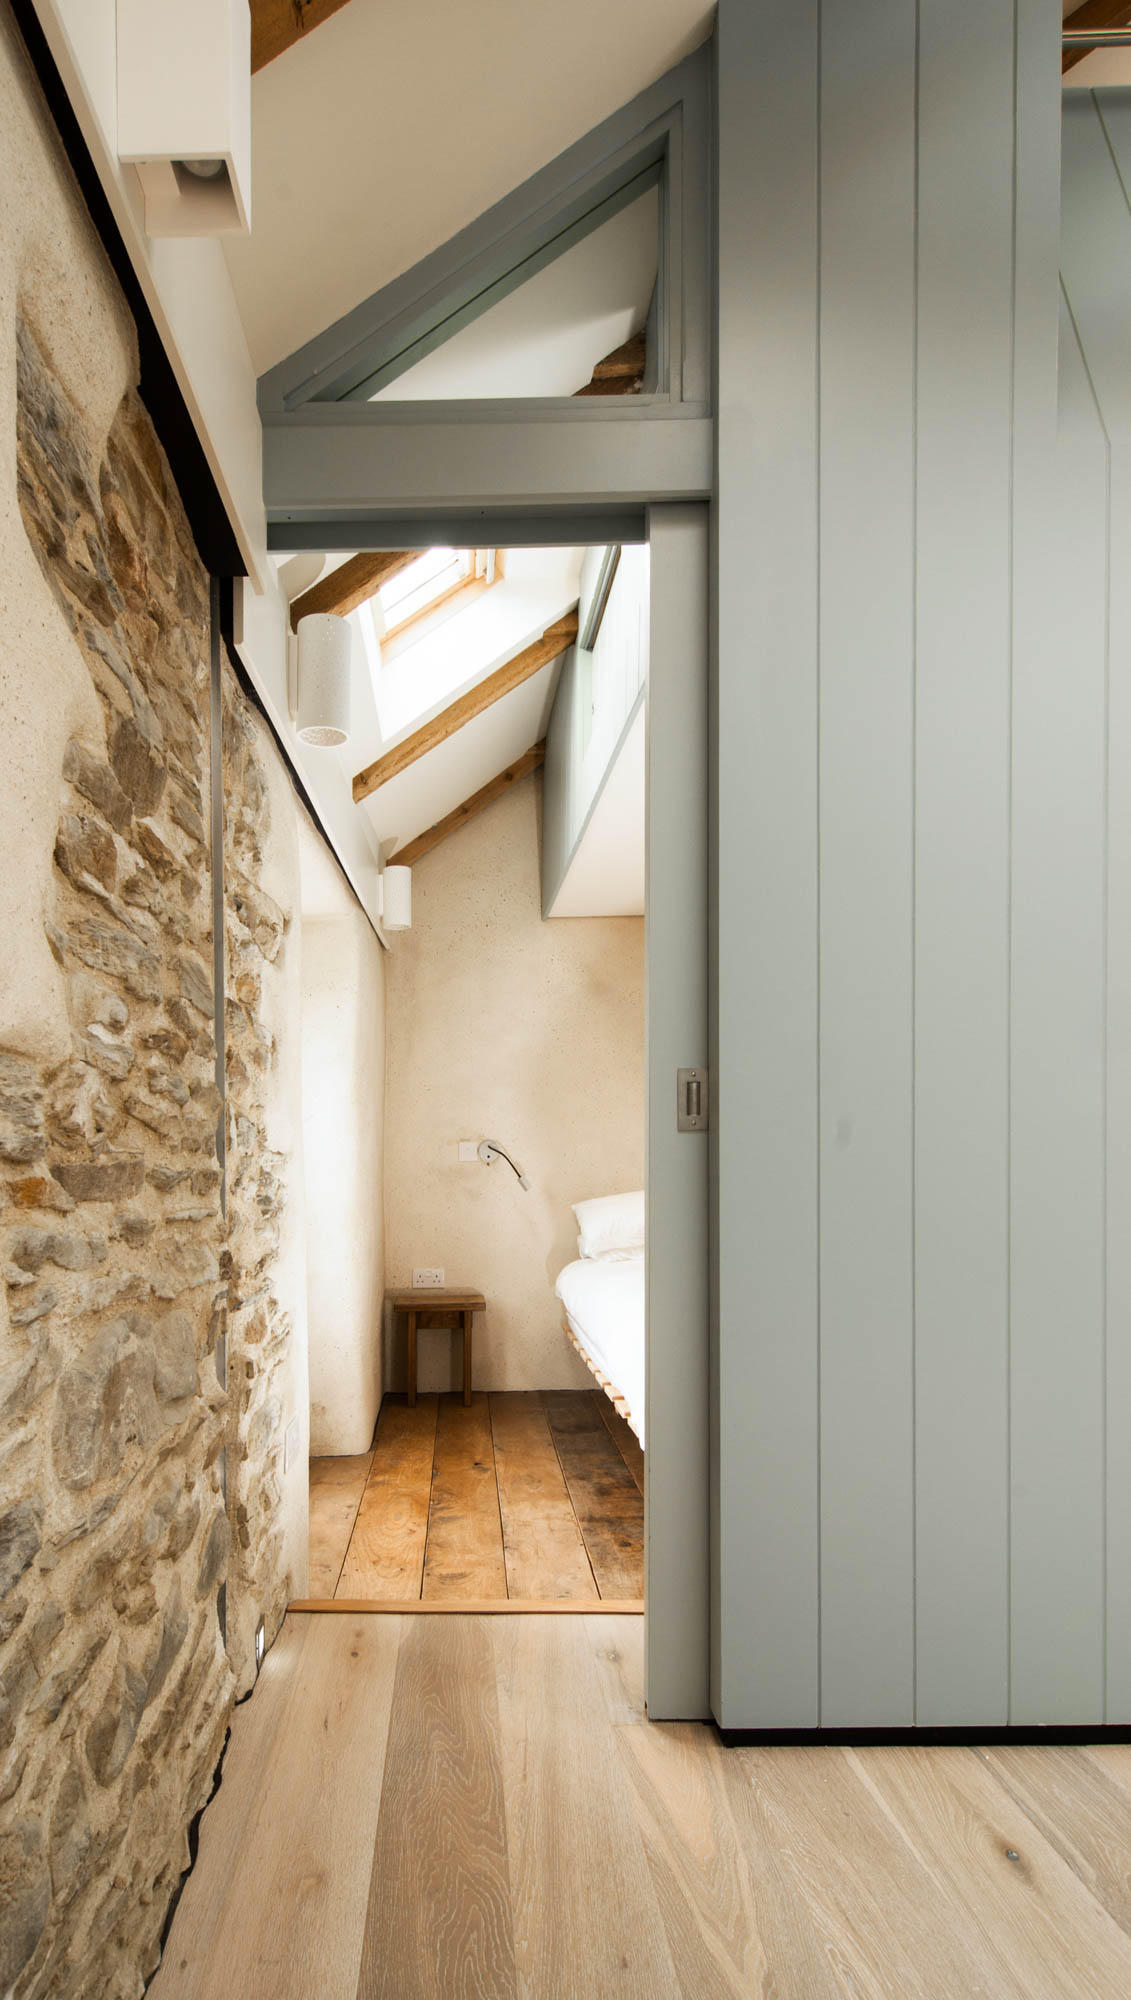 Contrasting light green beams and original stone walls.